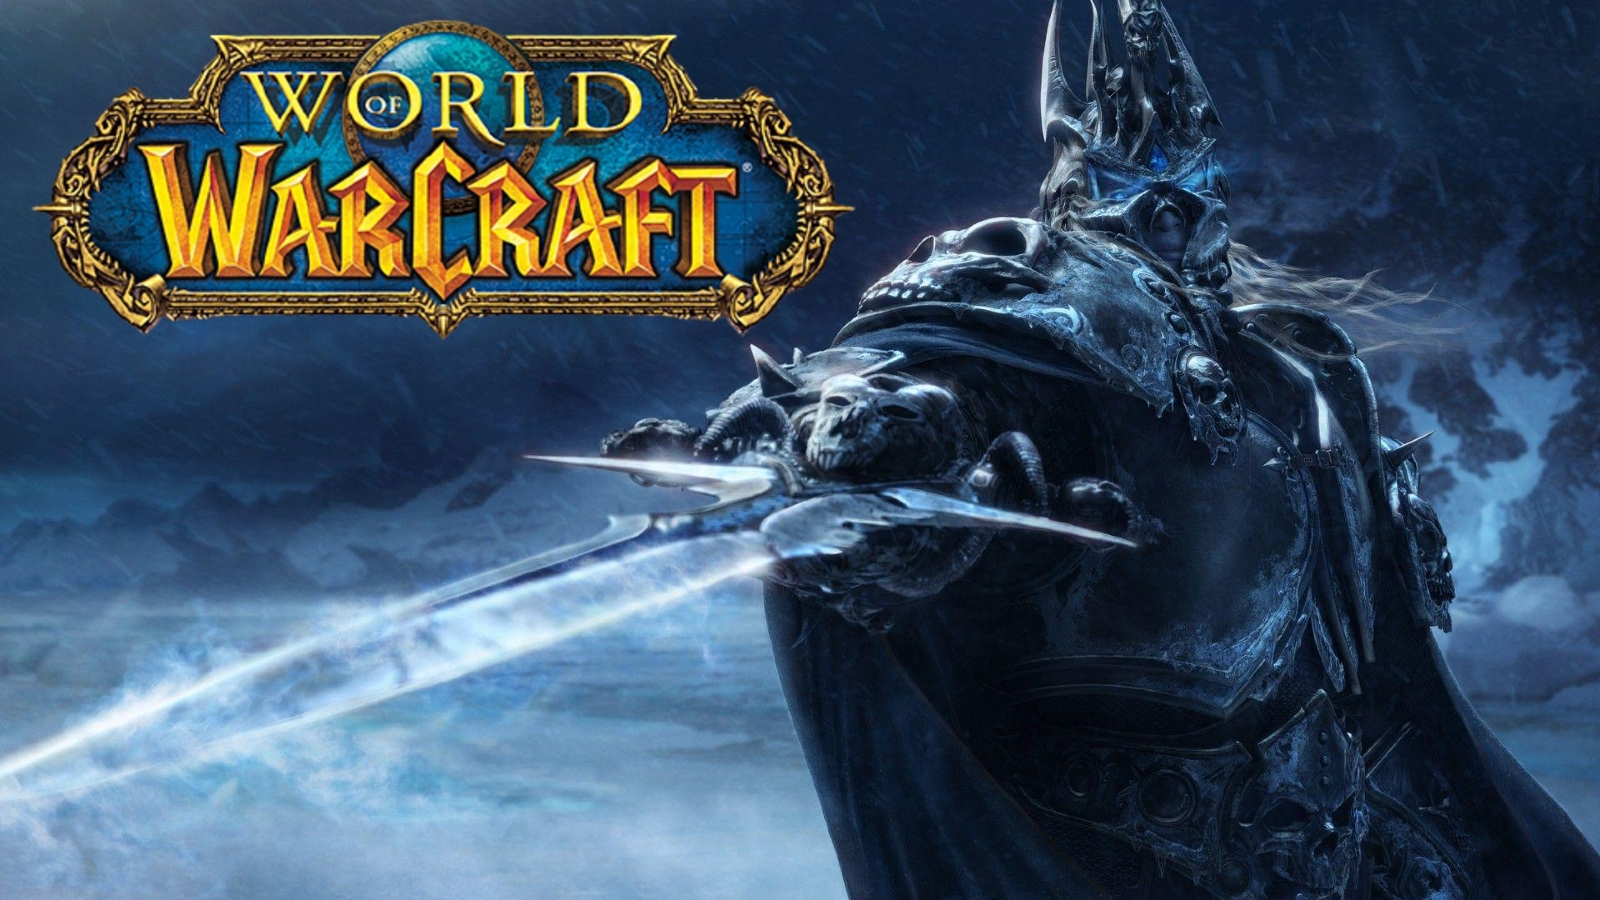 World of Warcraft WoW The Lich King